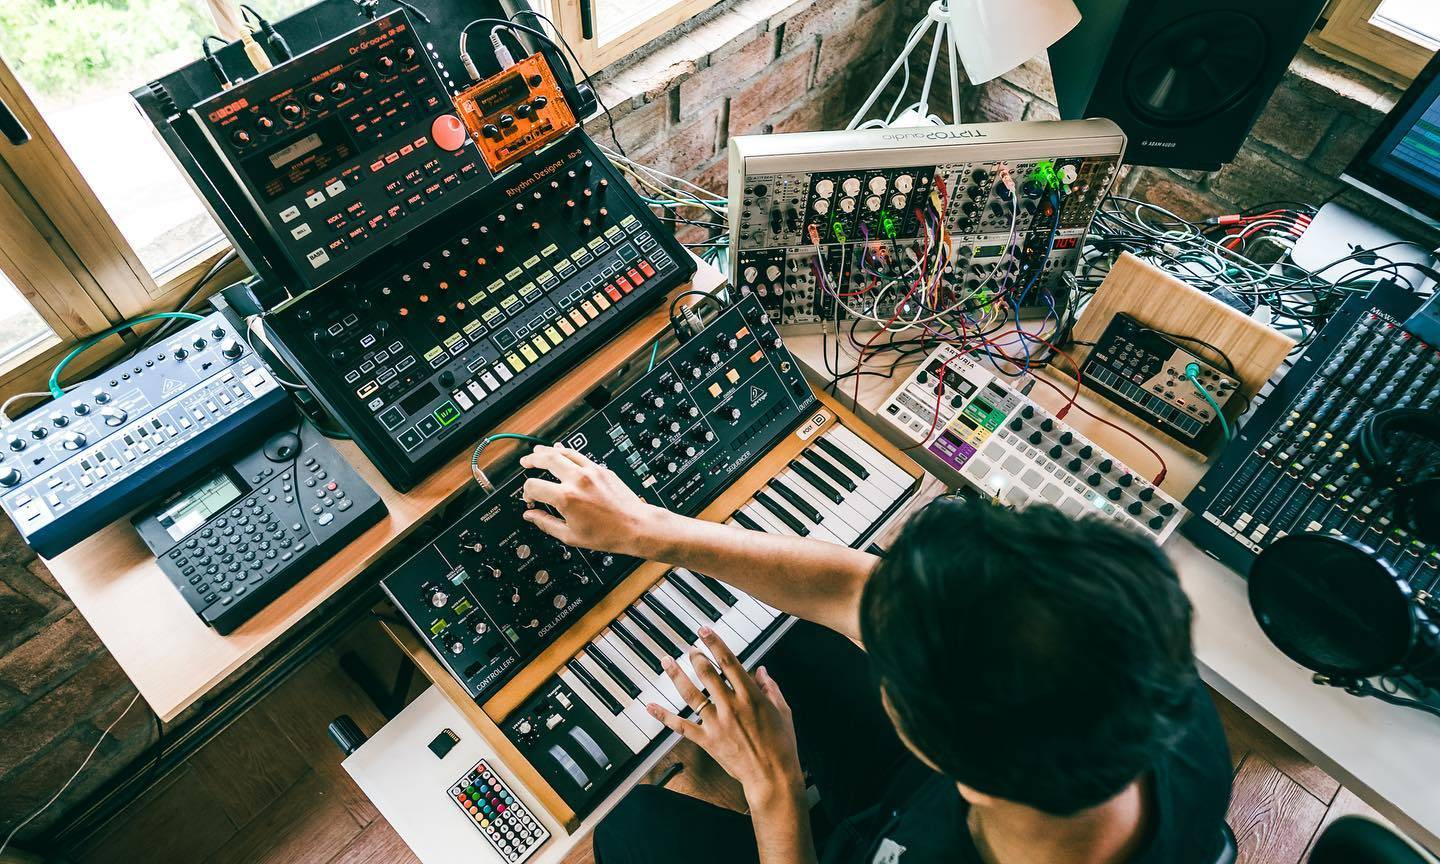 Take your music production to the next level with Alexis Cabrera's online courses